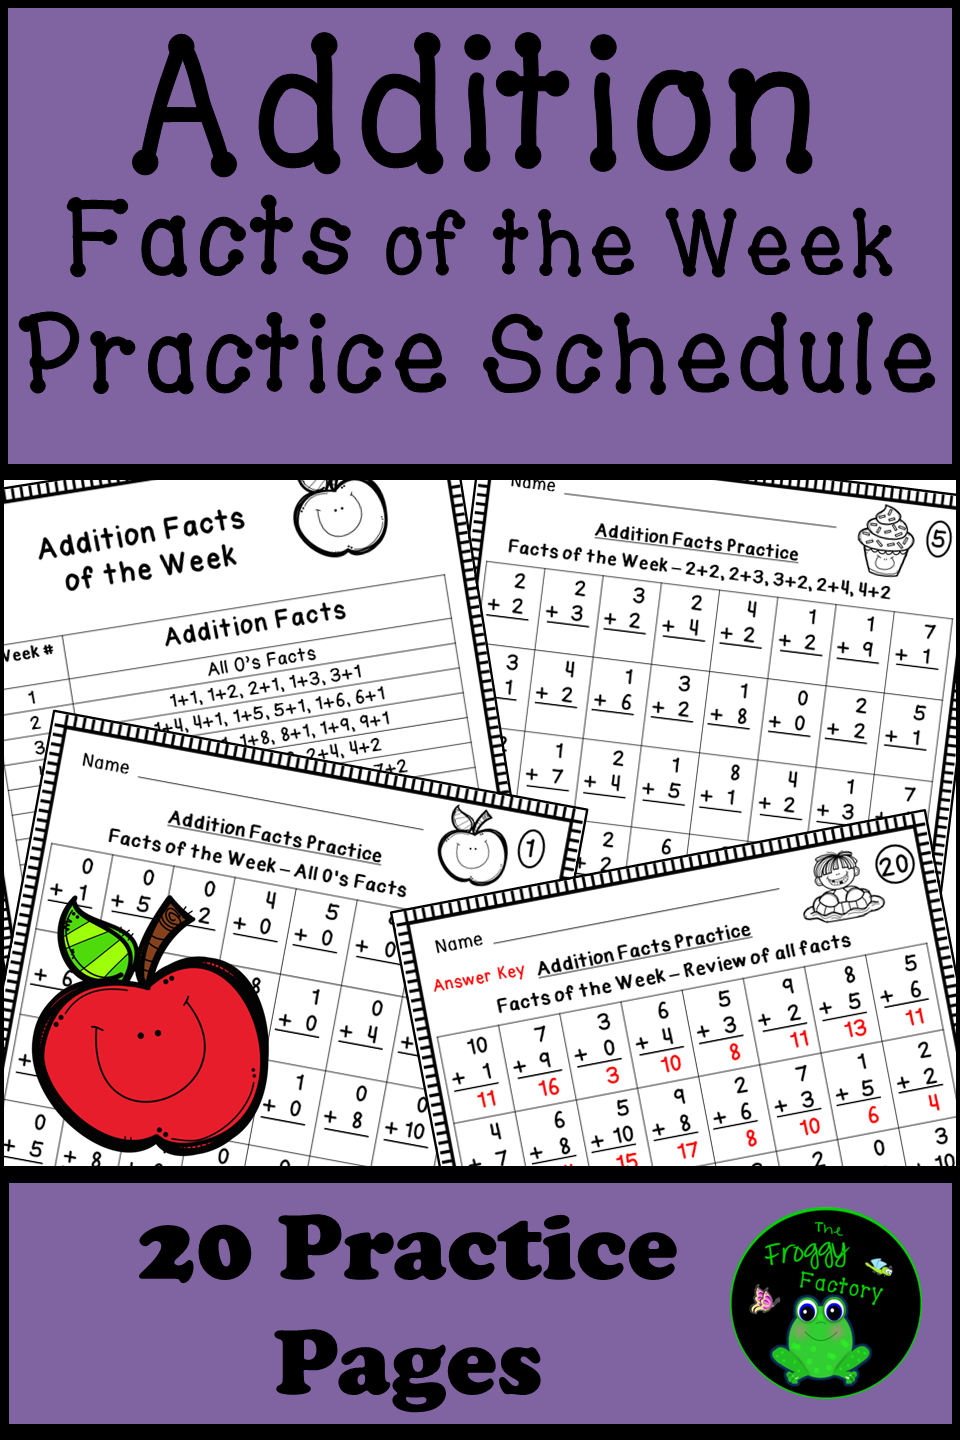 Addition Facts Practice Worksheets and Schedule | Addition facts ...